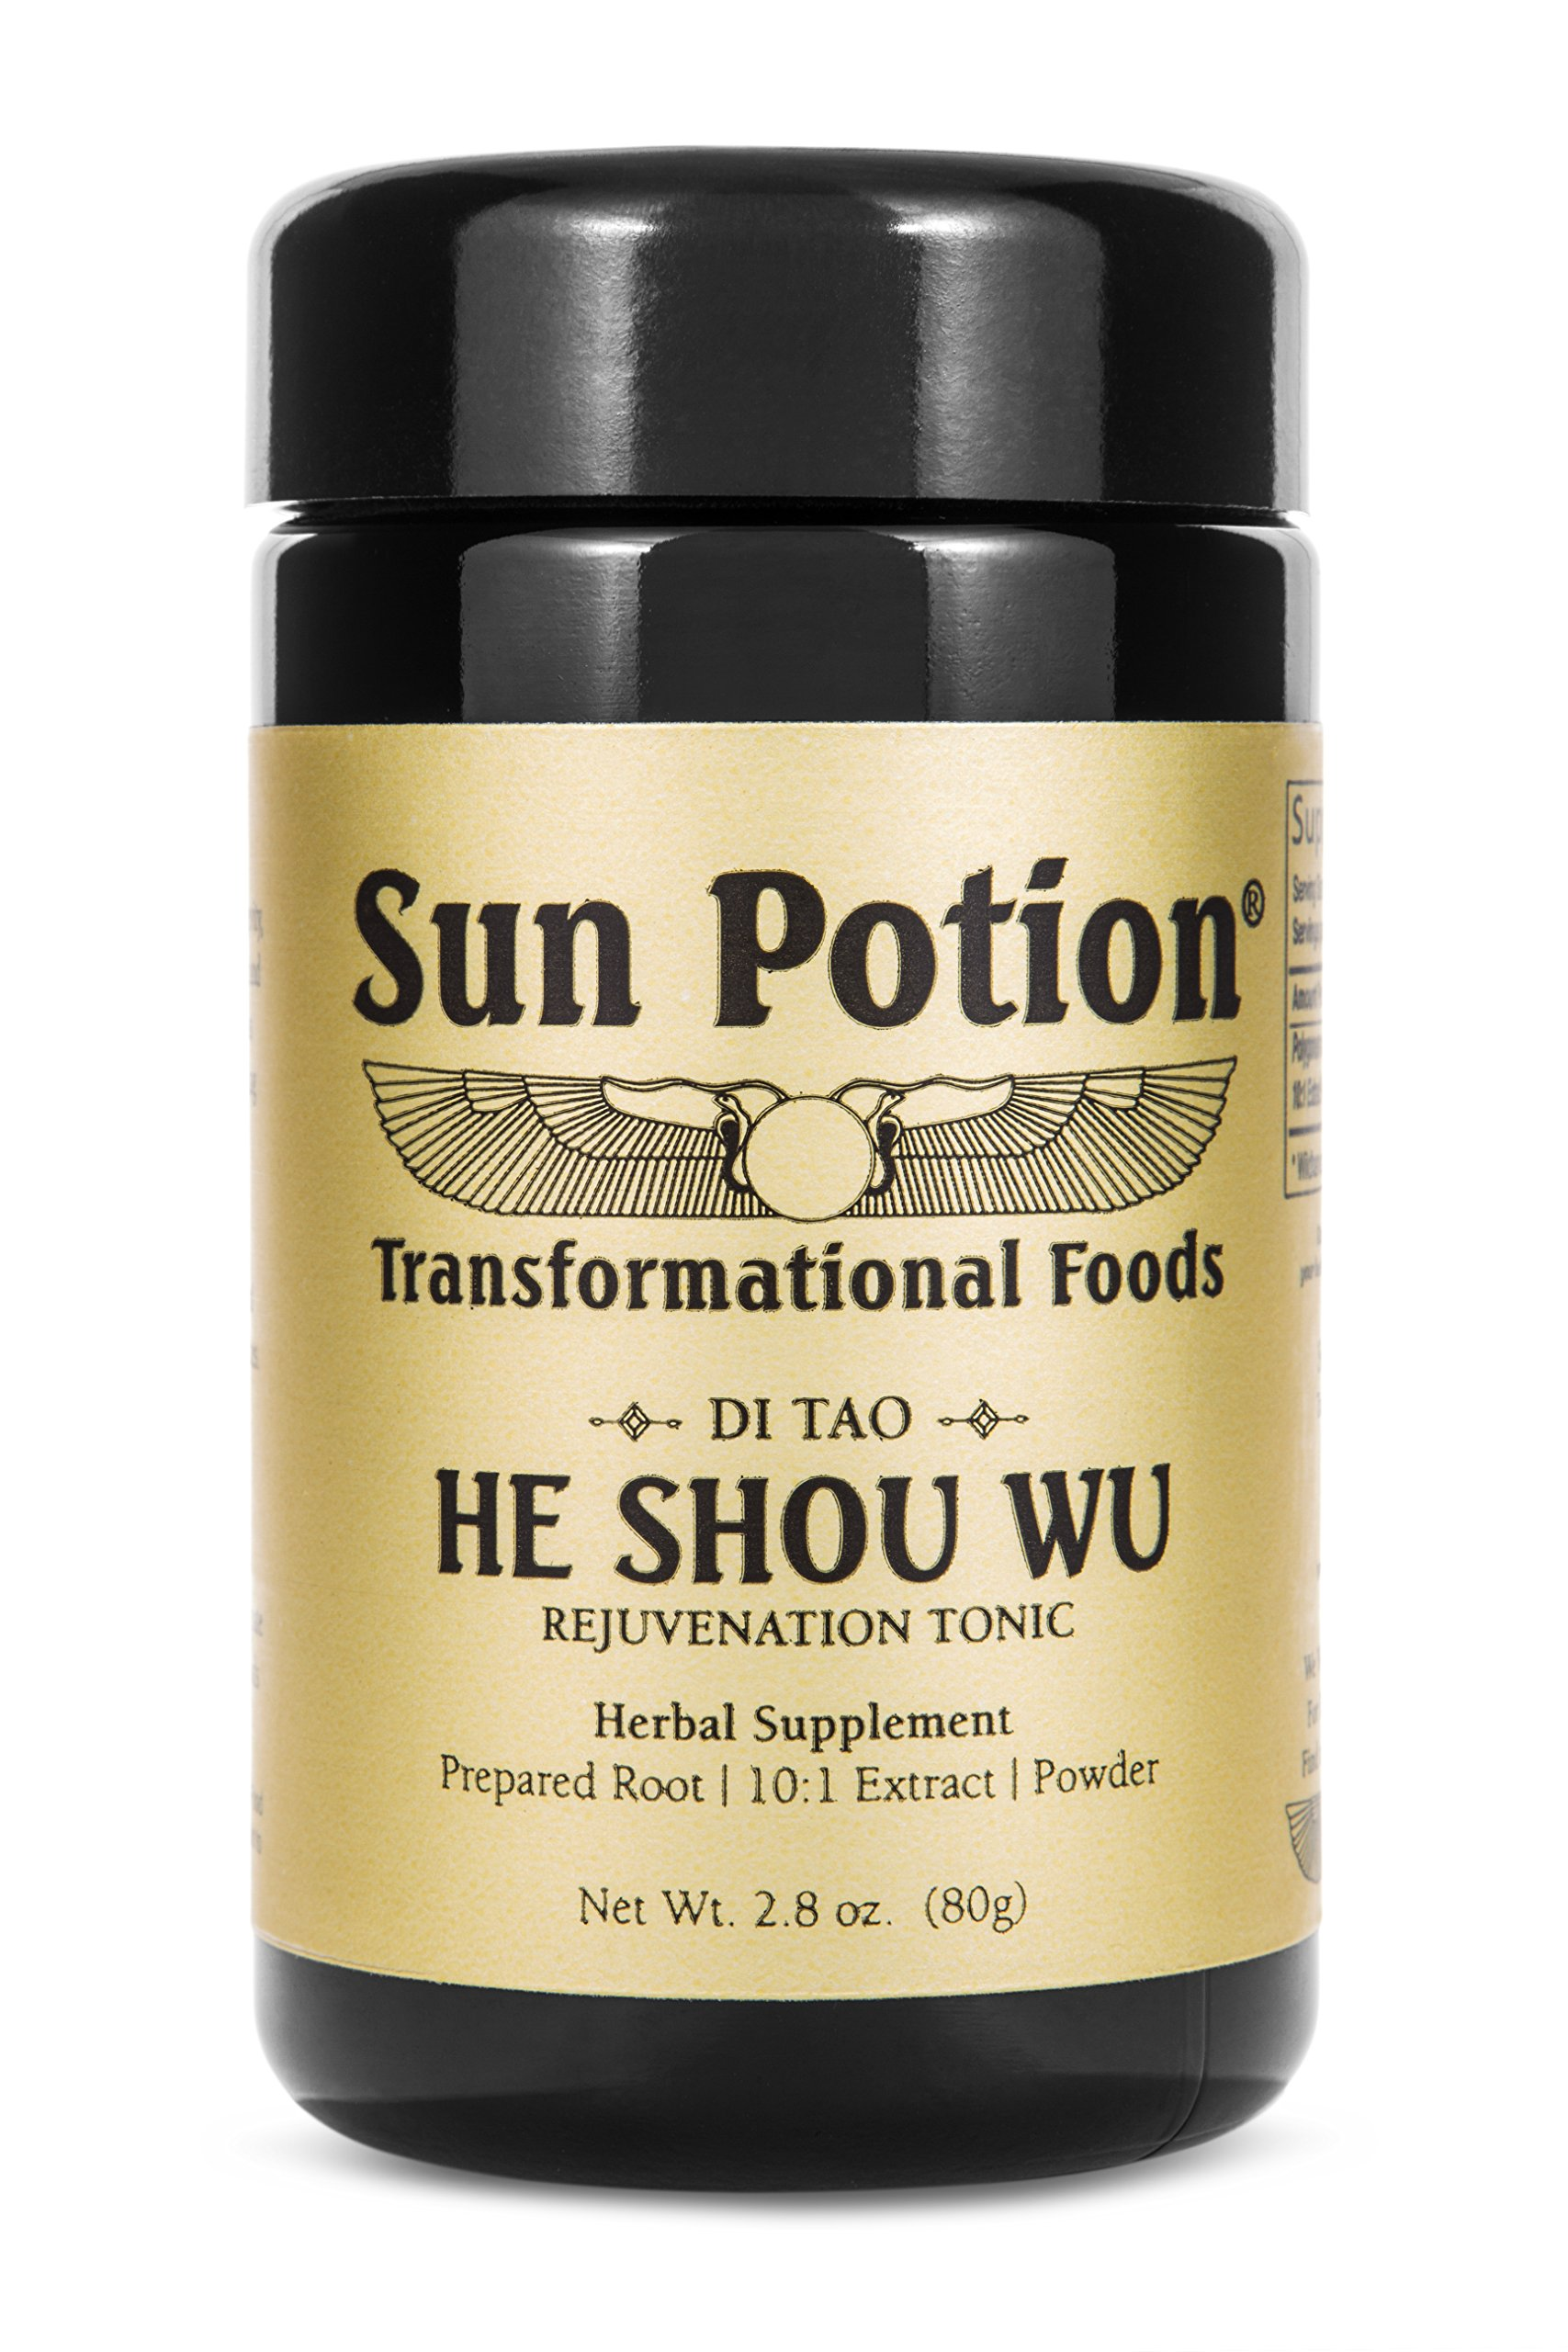 Sun Potion He Shou Wu (Wildcrafted) - 80 Gram Jar - Used as a Longevity, Anti-aging, Blood-building, Beauty, and Rejuvenation Food